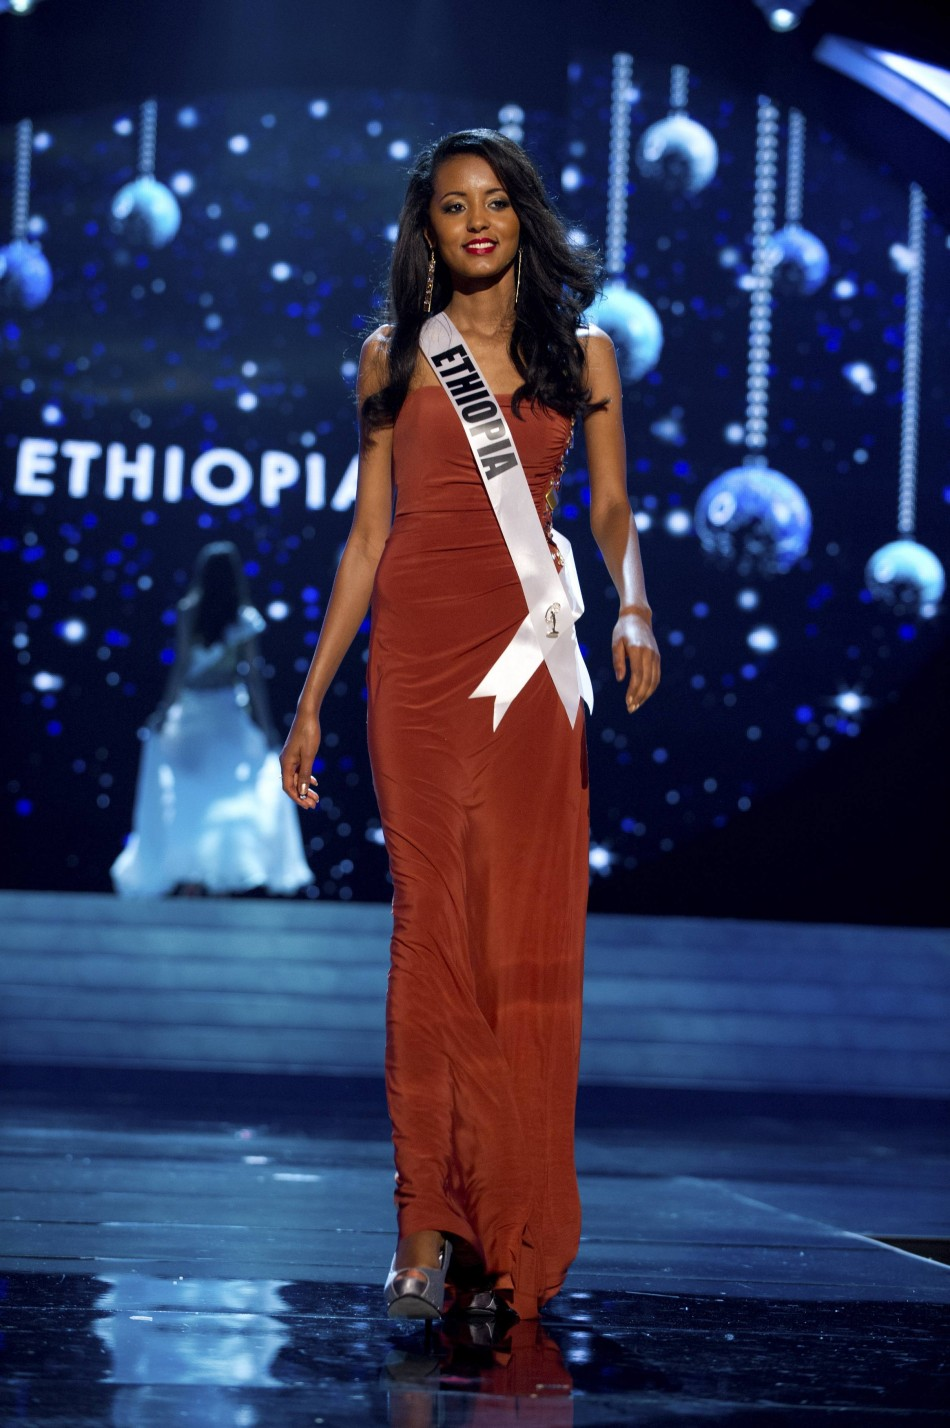 Miss Ethiopia 2012 Getachew competes in an evening gown of her choice during the Evening Gown Competition of the 2012 Miss Universe Presentation Show in Las Vegas